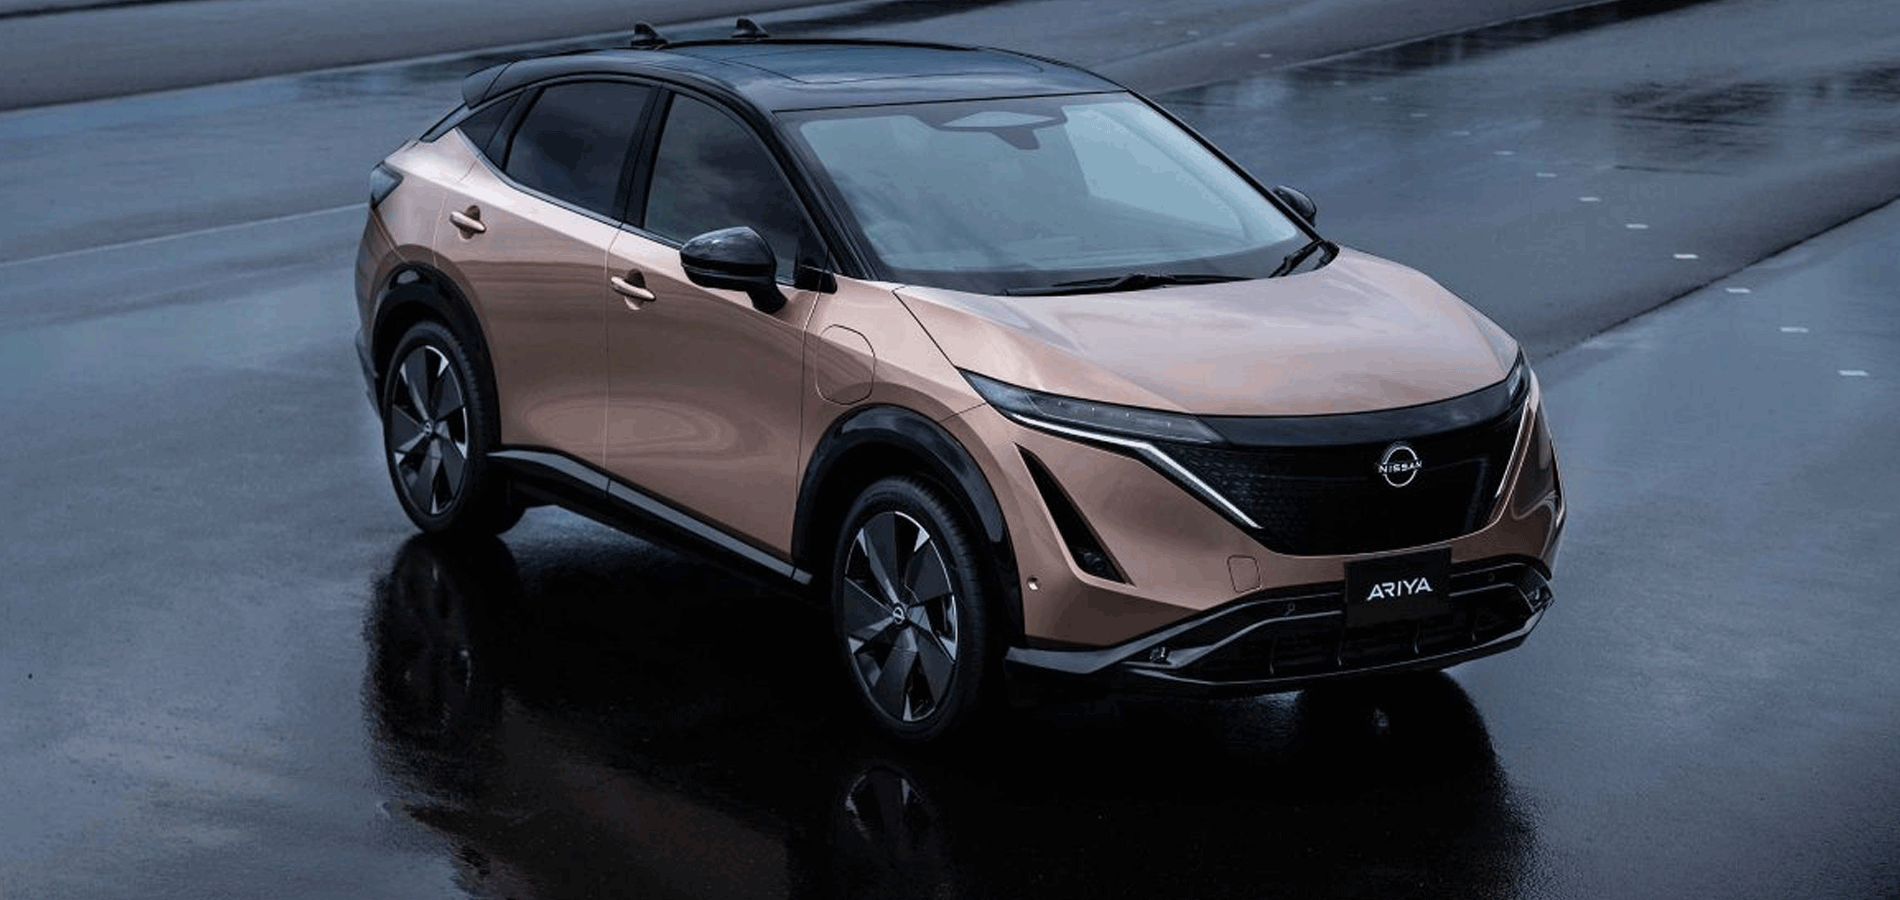 First E-SUV To Drive EV Sales. Nissan recently unveiled its new electric coupe crossover - the Ariya. Read all this little gamechanger here.